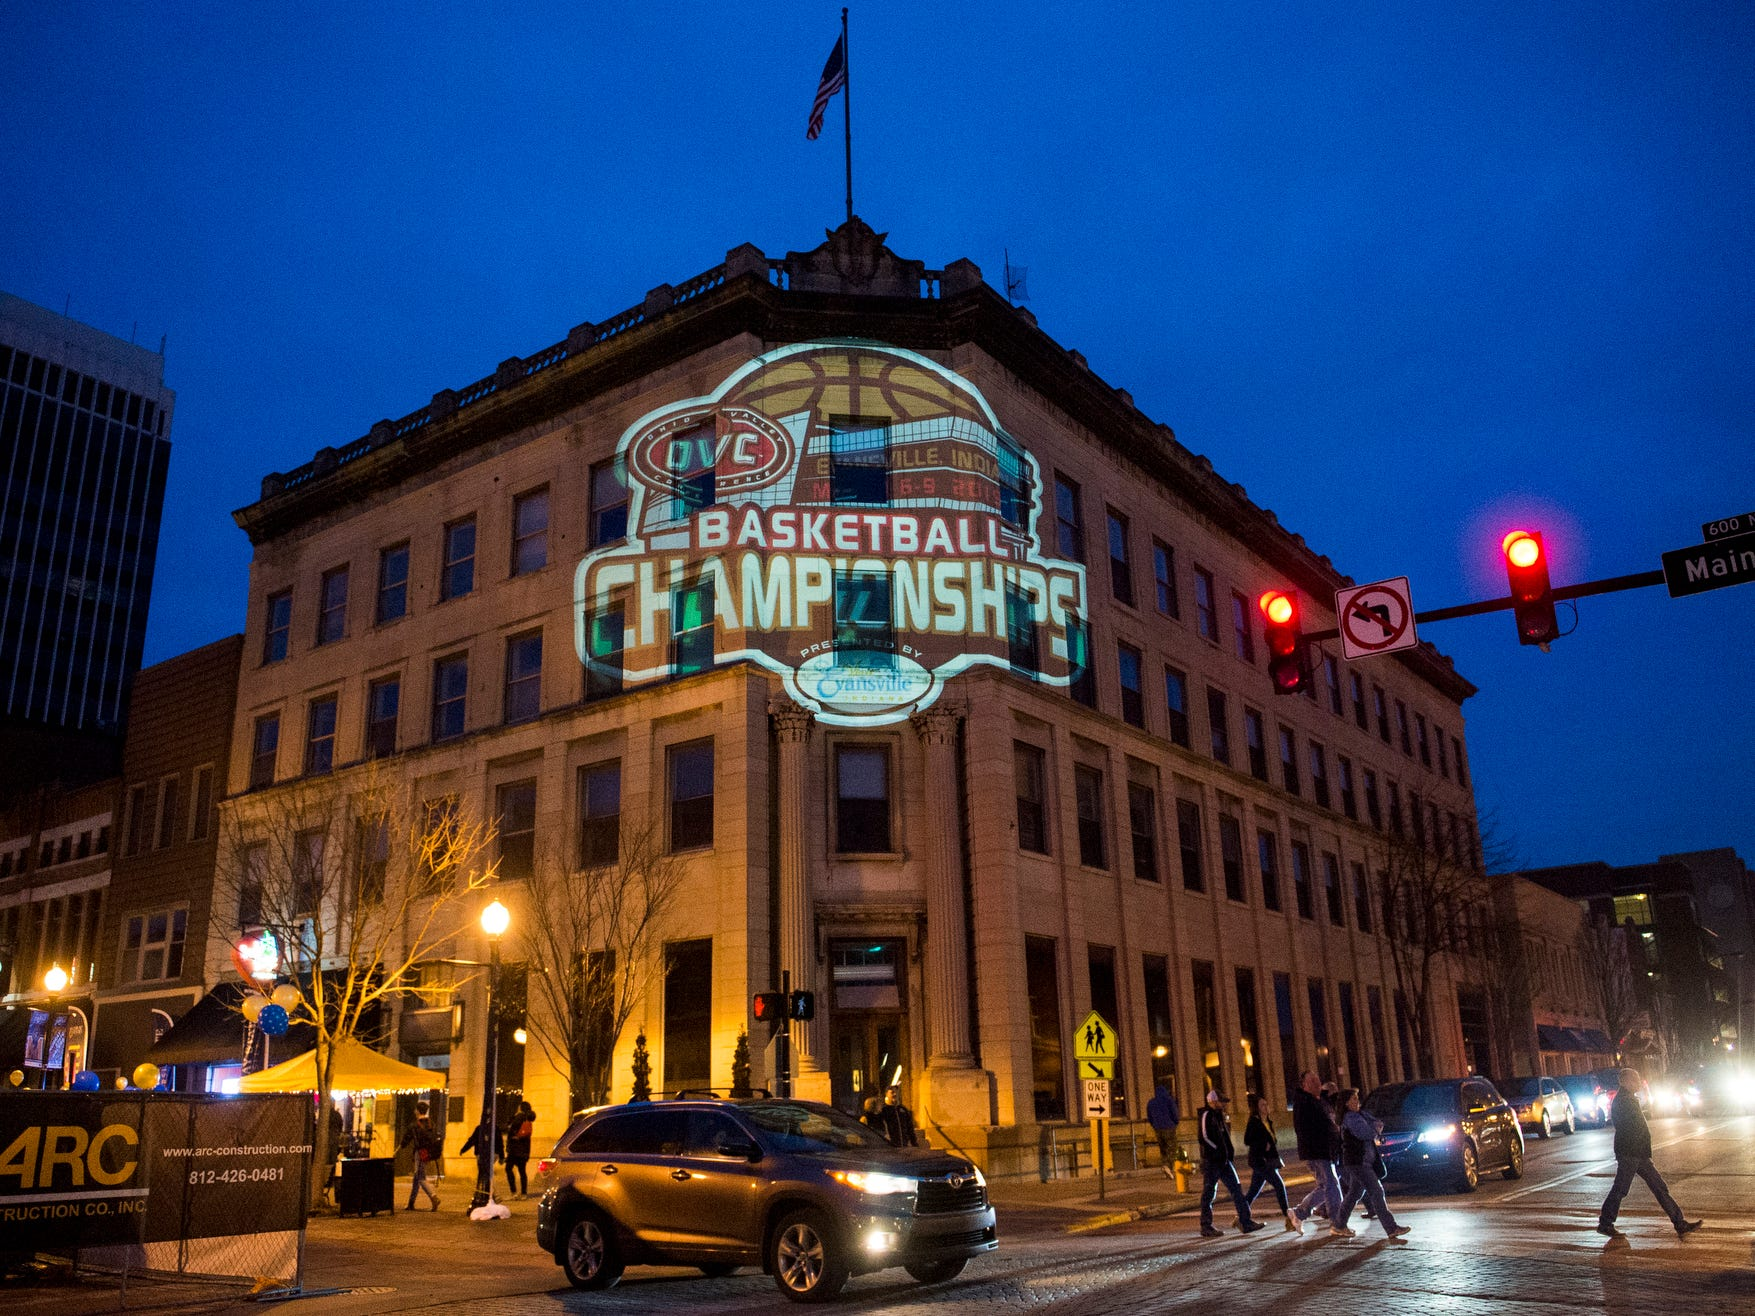 The Ohio Valley Conference Tournament logo is projected on a building across from the Ford Center in Evansville, Ind., Friday, March 8, 2019.